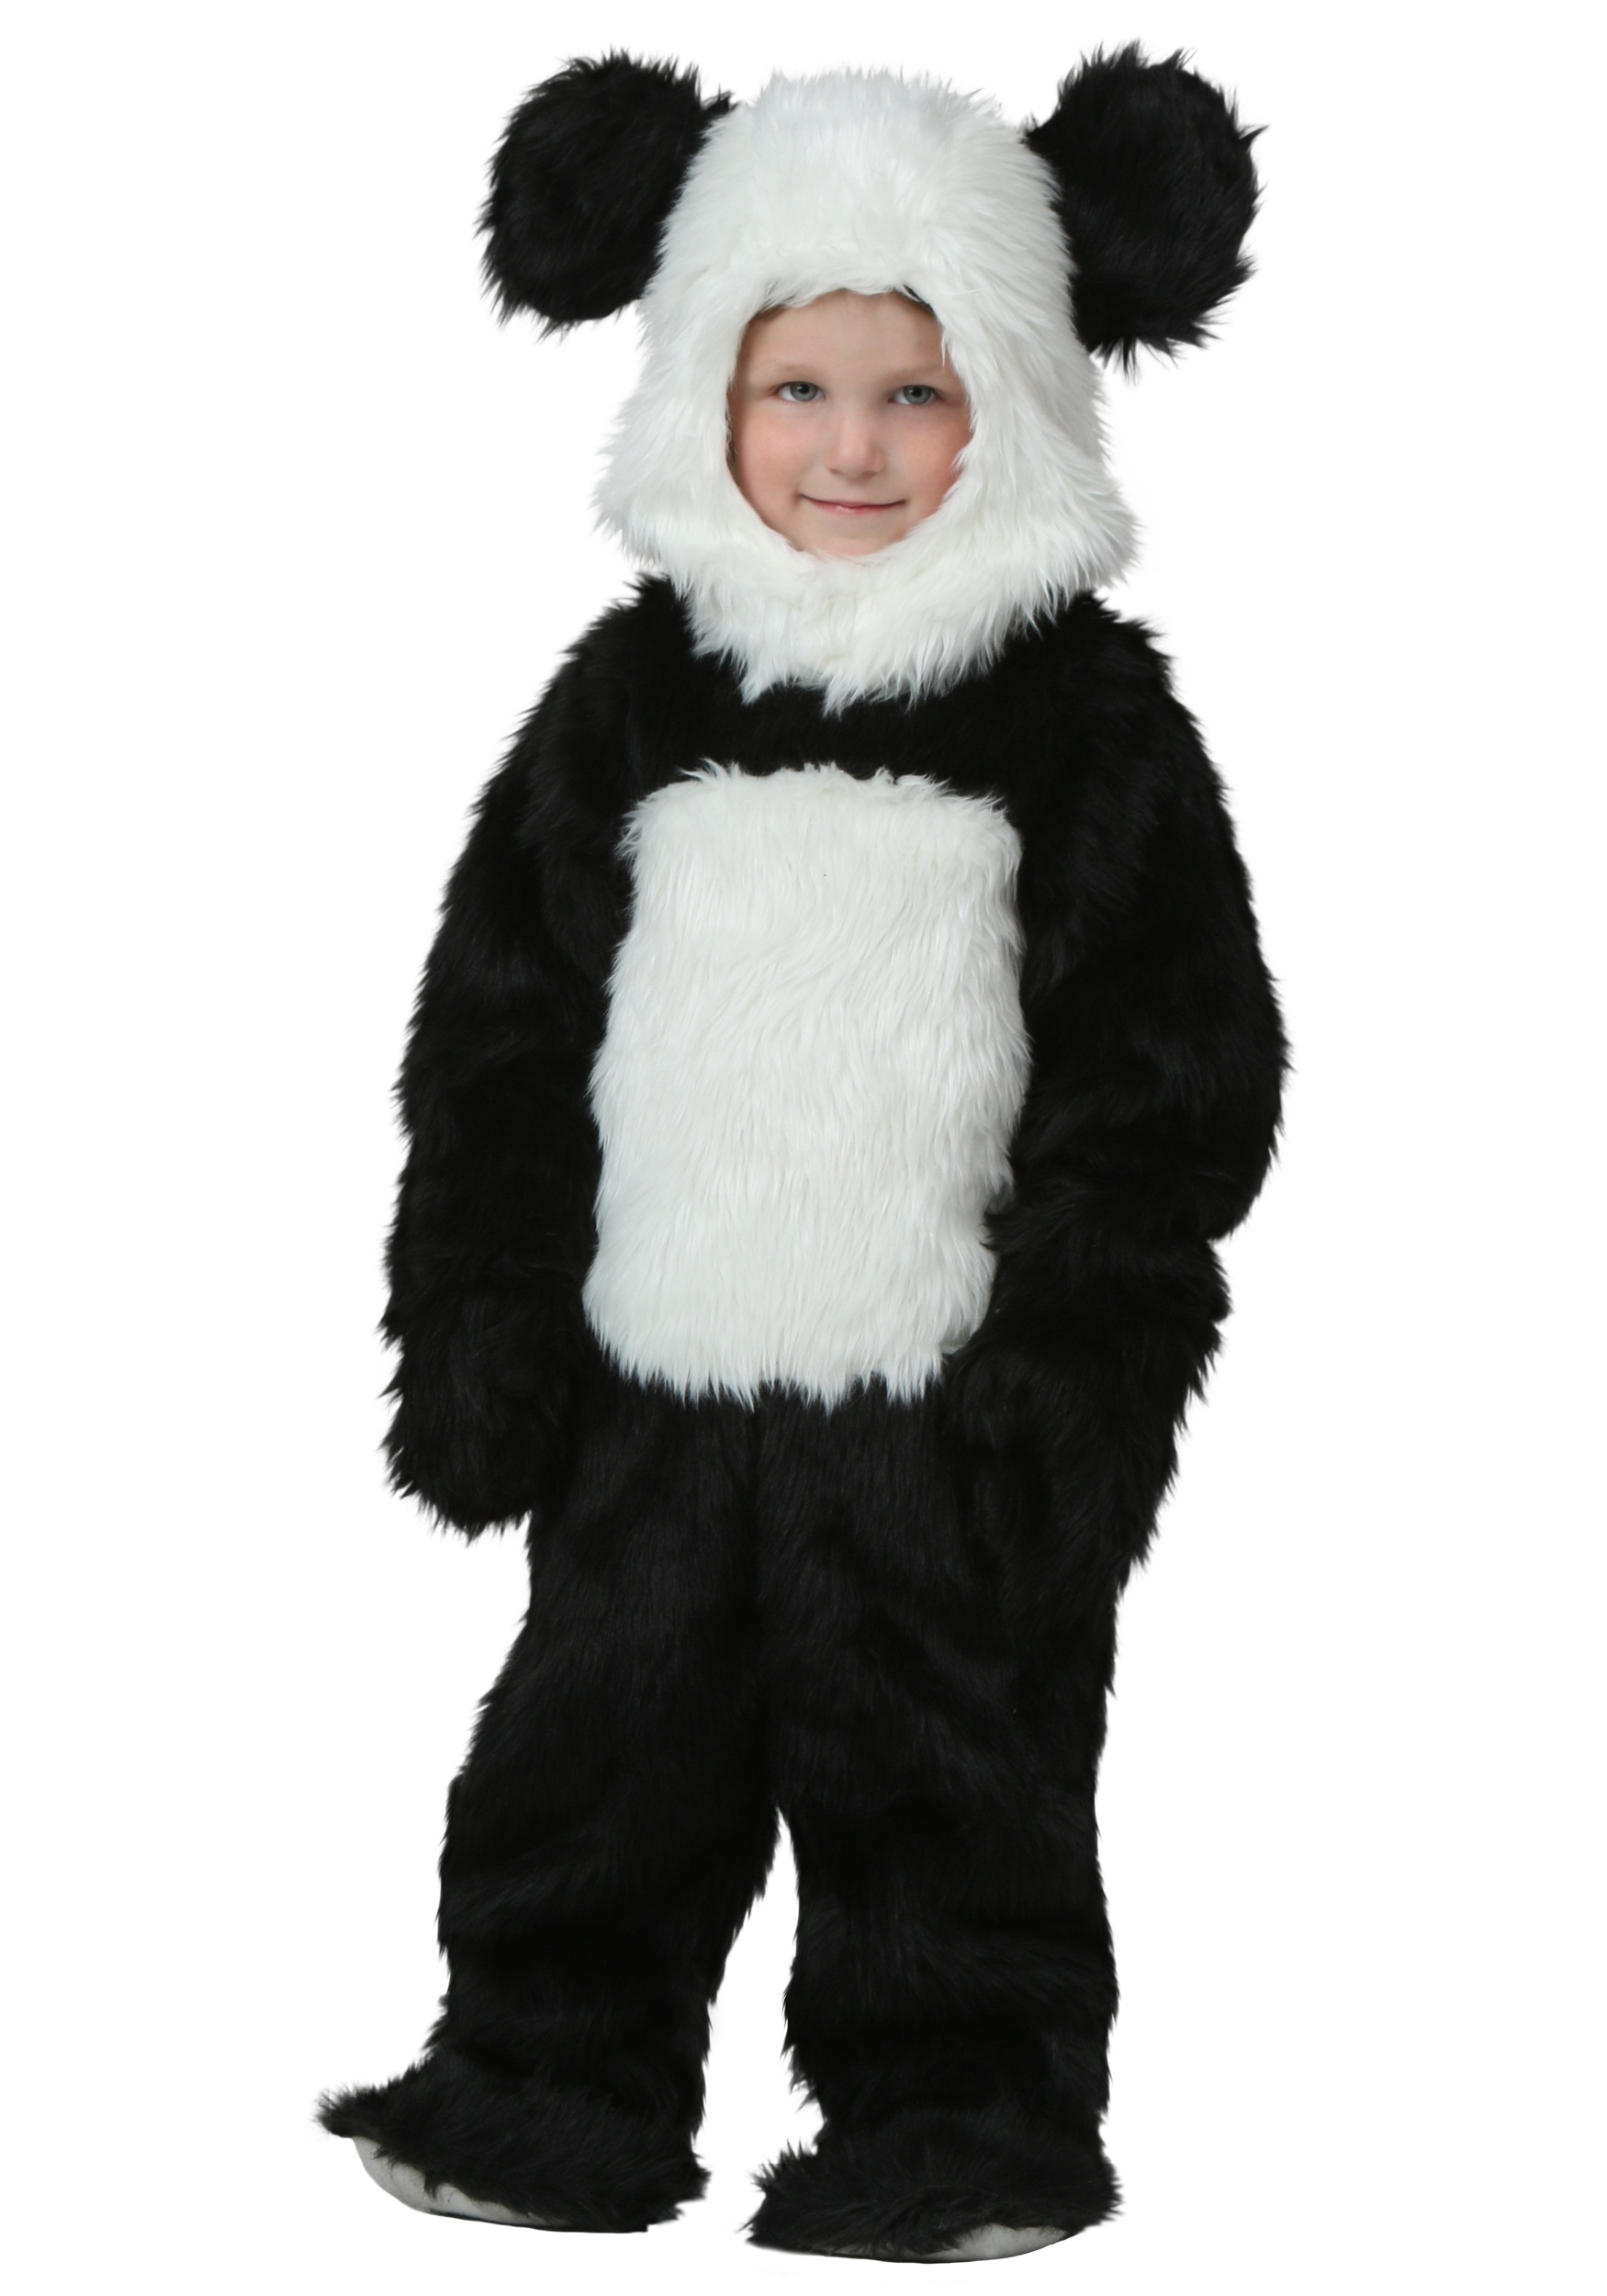 Toddler Halloween Costume Kids Romper Costumes for Baby Boys and Girls ( Years) from $ 29 95 Prime. iSZEYU. Adult Onesie for Women Pajamas Panda Costume Men Teens Girl Animal Onsie $ 29 99 Prime. Women's Panda Costume for Halloween - Panda Jumpsuit Outfit $ 59 95 Prime. RG Costumes. Parker Panda. from $ 23 12 Prime. out of 5 stars